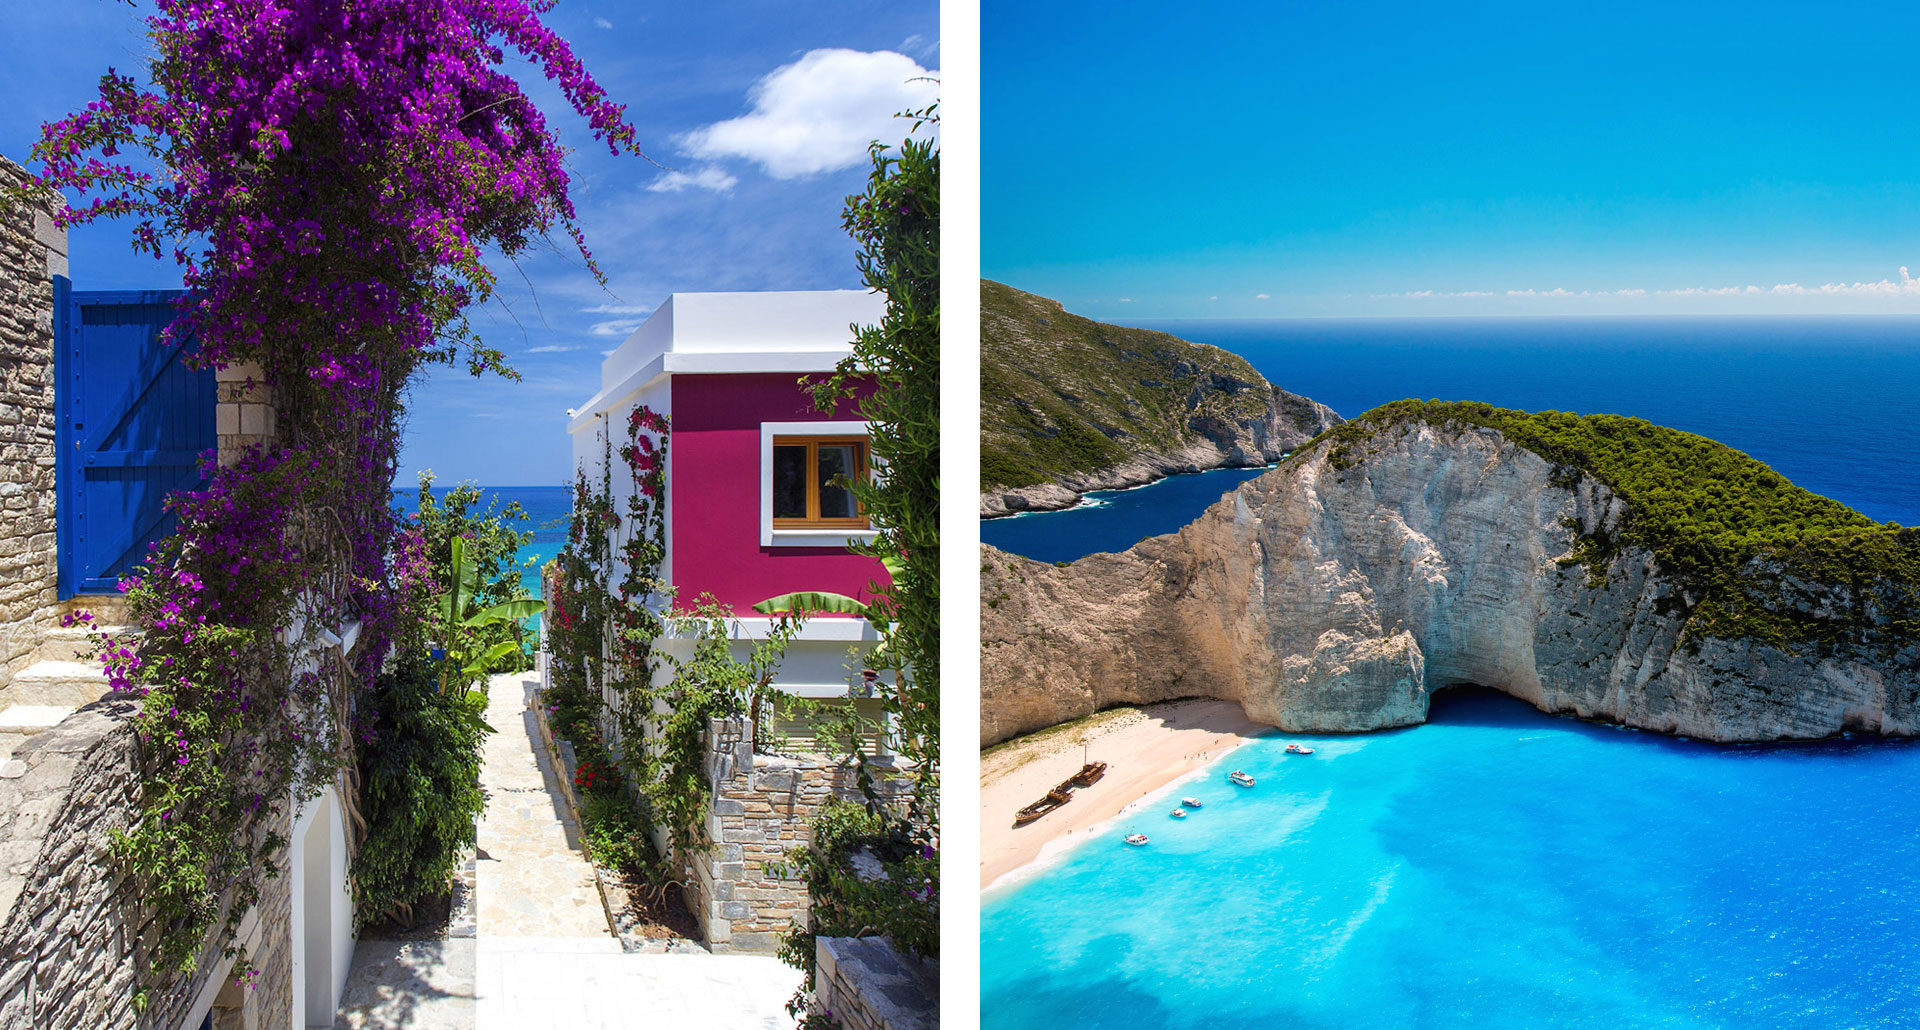 Porto Zante Villas & Spa - boutique hotel in Zakynthos